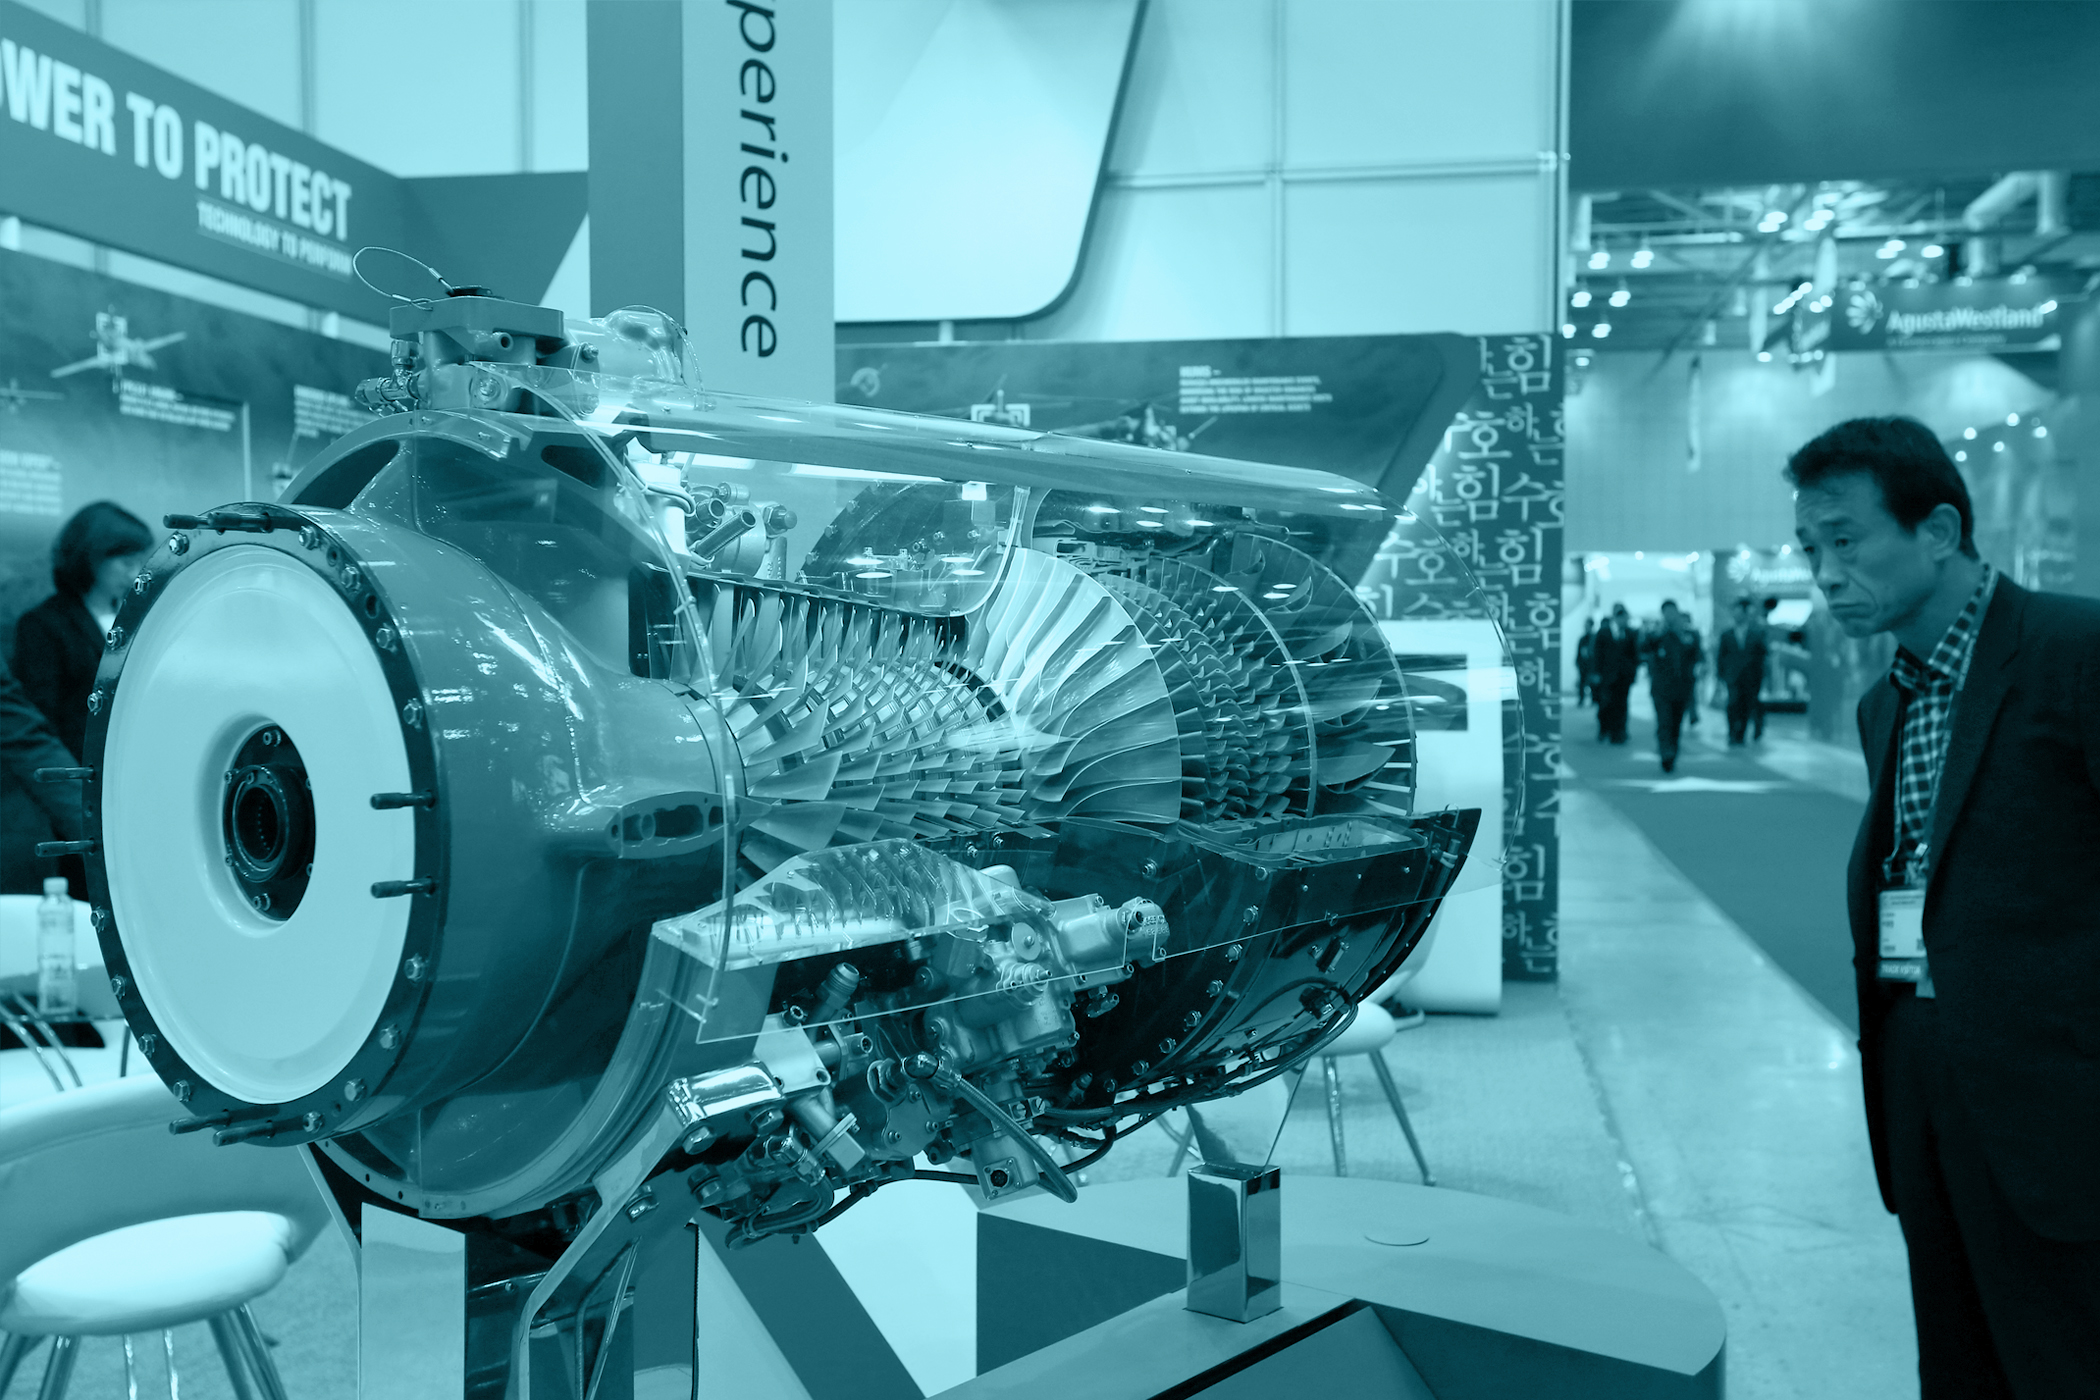 A visitor looks at a model of the Honeywell Aerospace T55 engine at the Seoul International Aerospace & Defense Exhibition 2013 in Goyang, South Korea, on October 29, 2013.